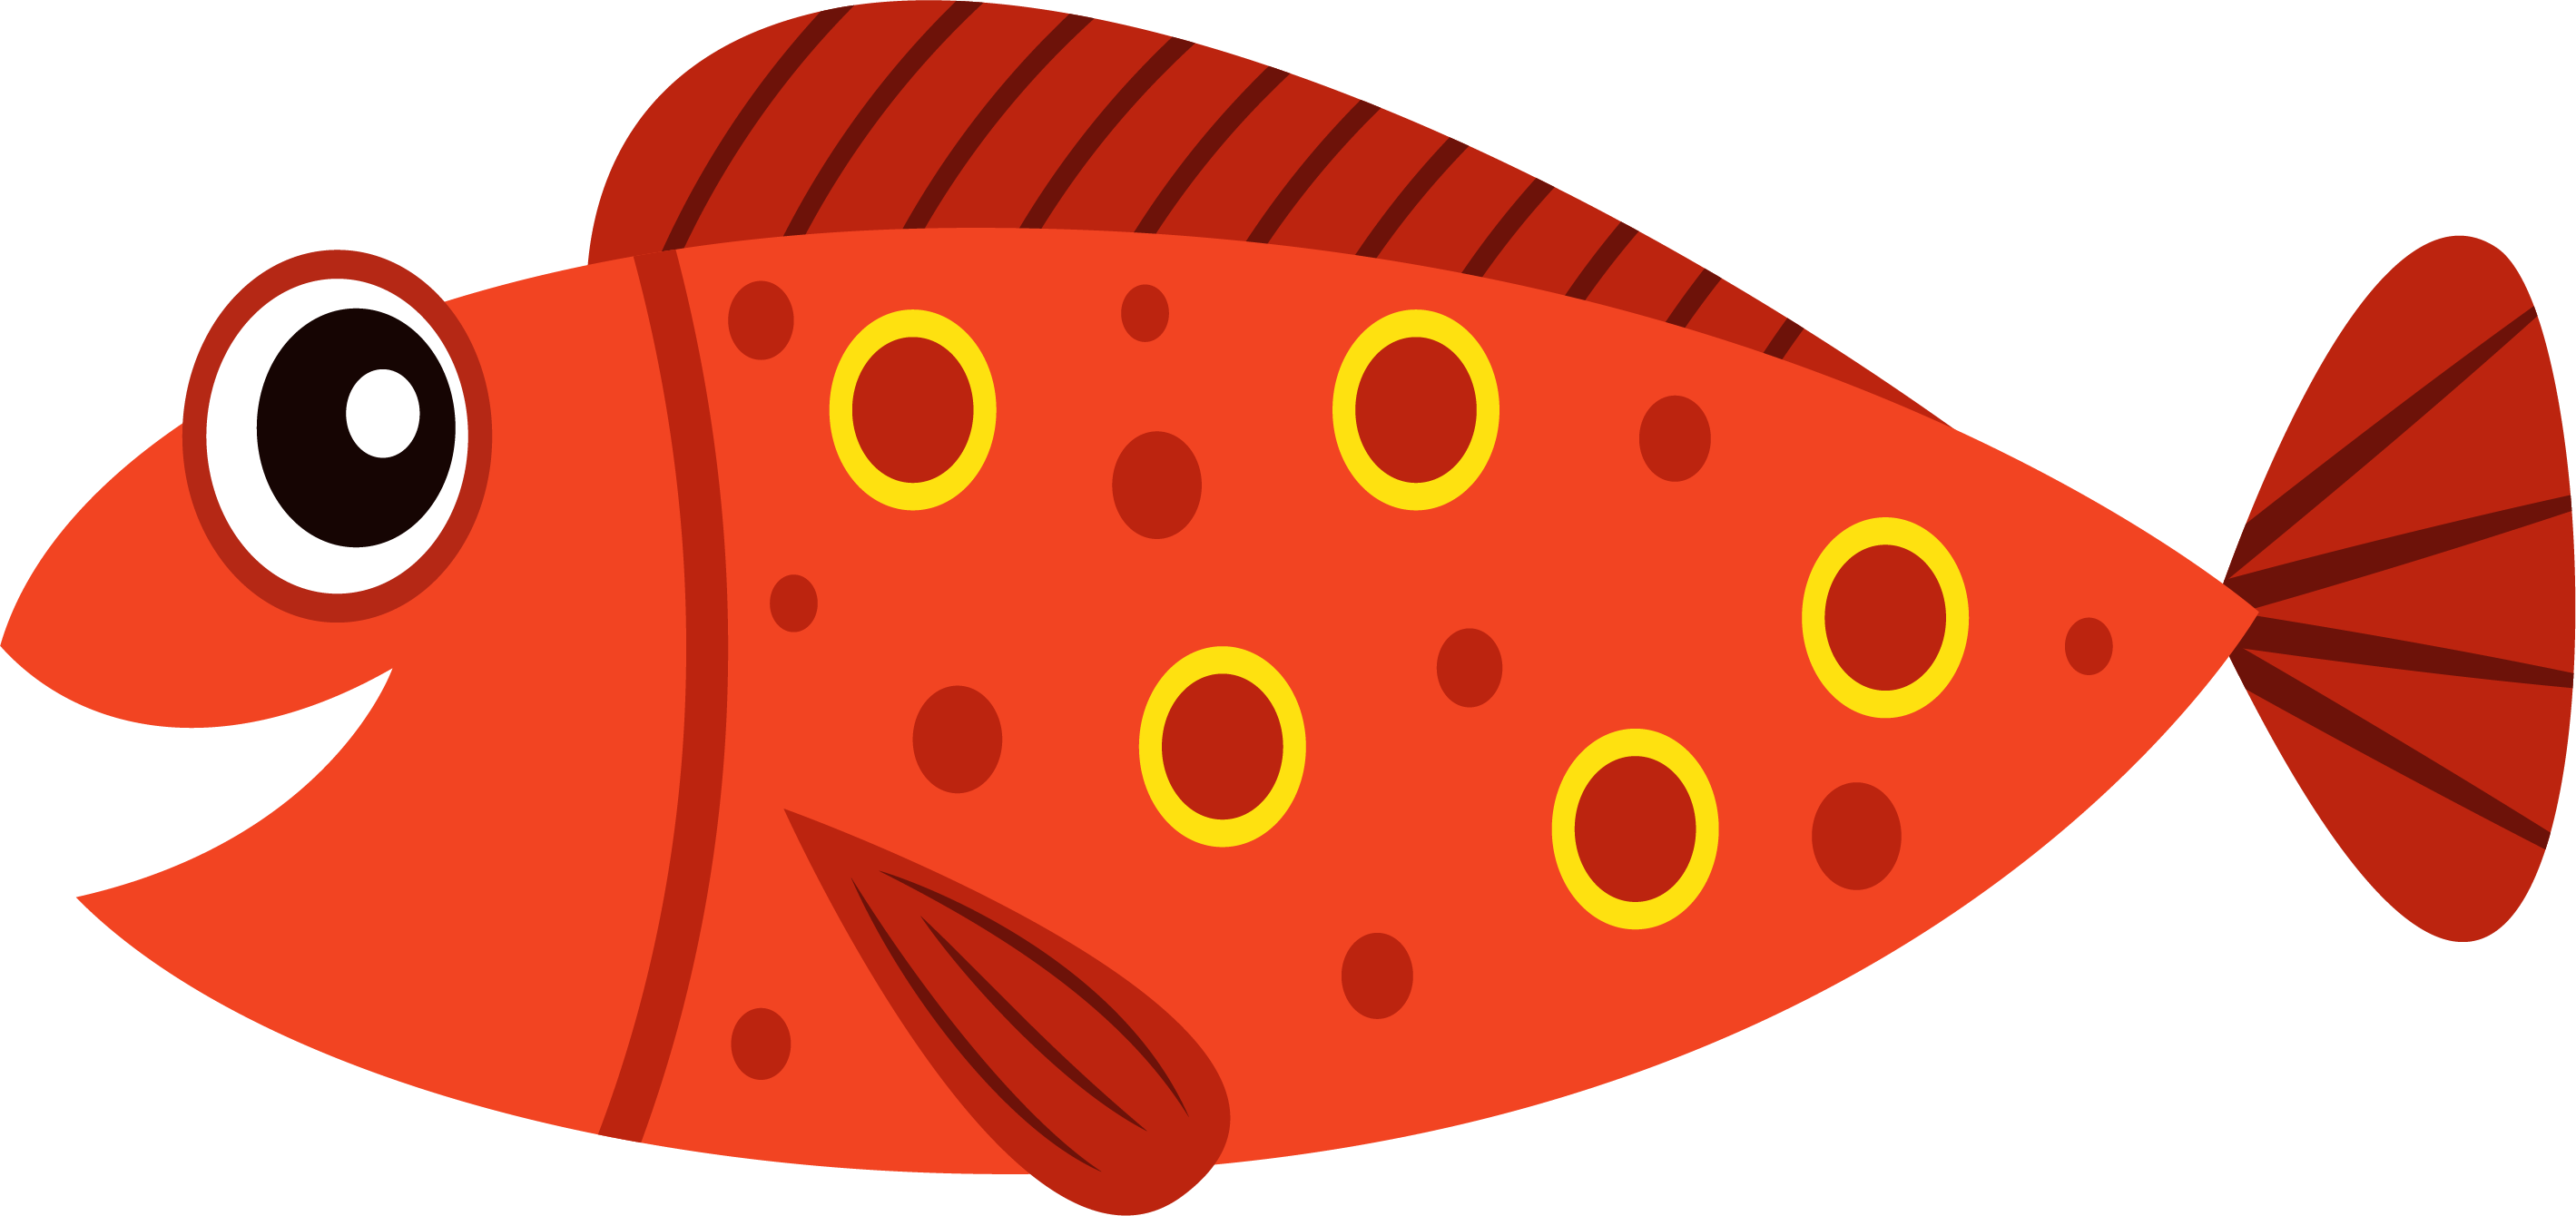 Fish png images transparent. Fishing clipart fishing trip